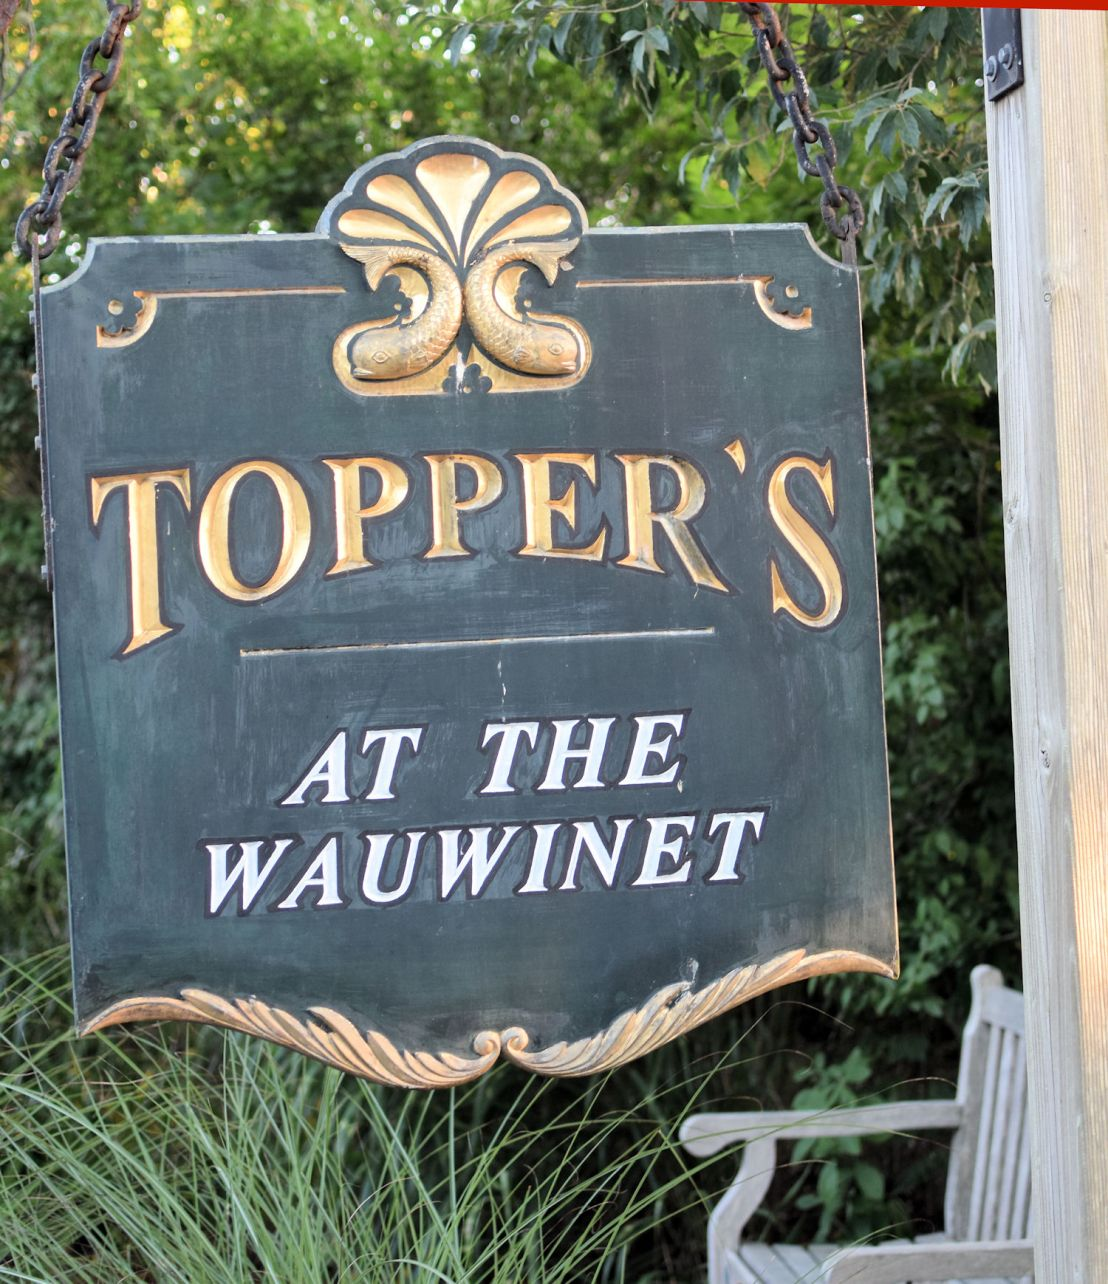 Toppers at the Wauwinet